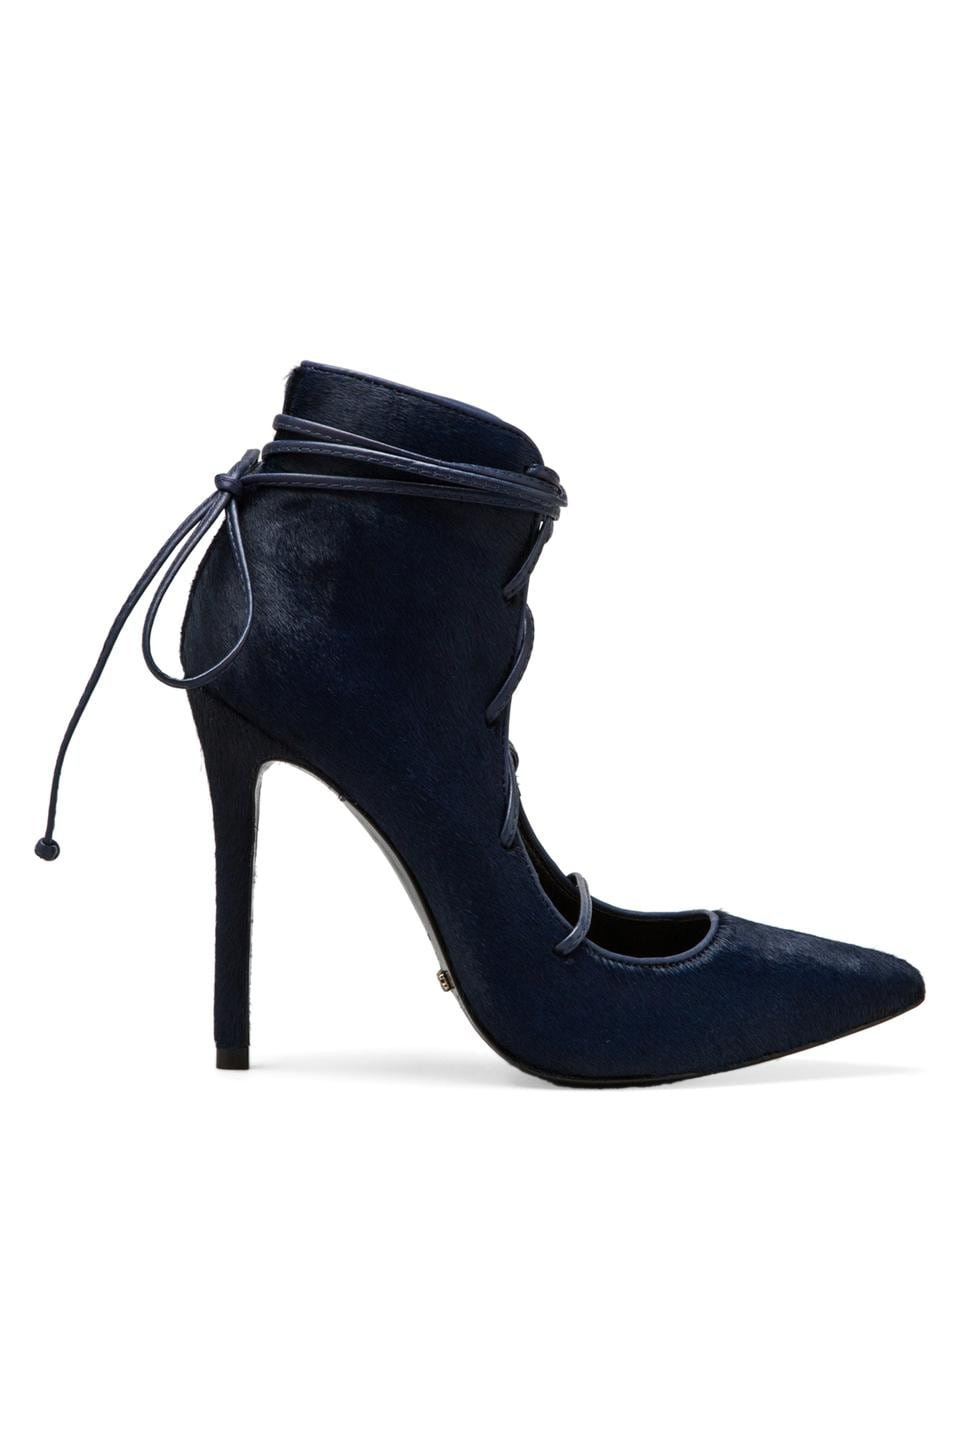 Schutz Alameda Heel with Calf Fur in Sailfish